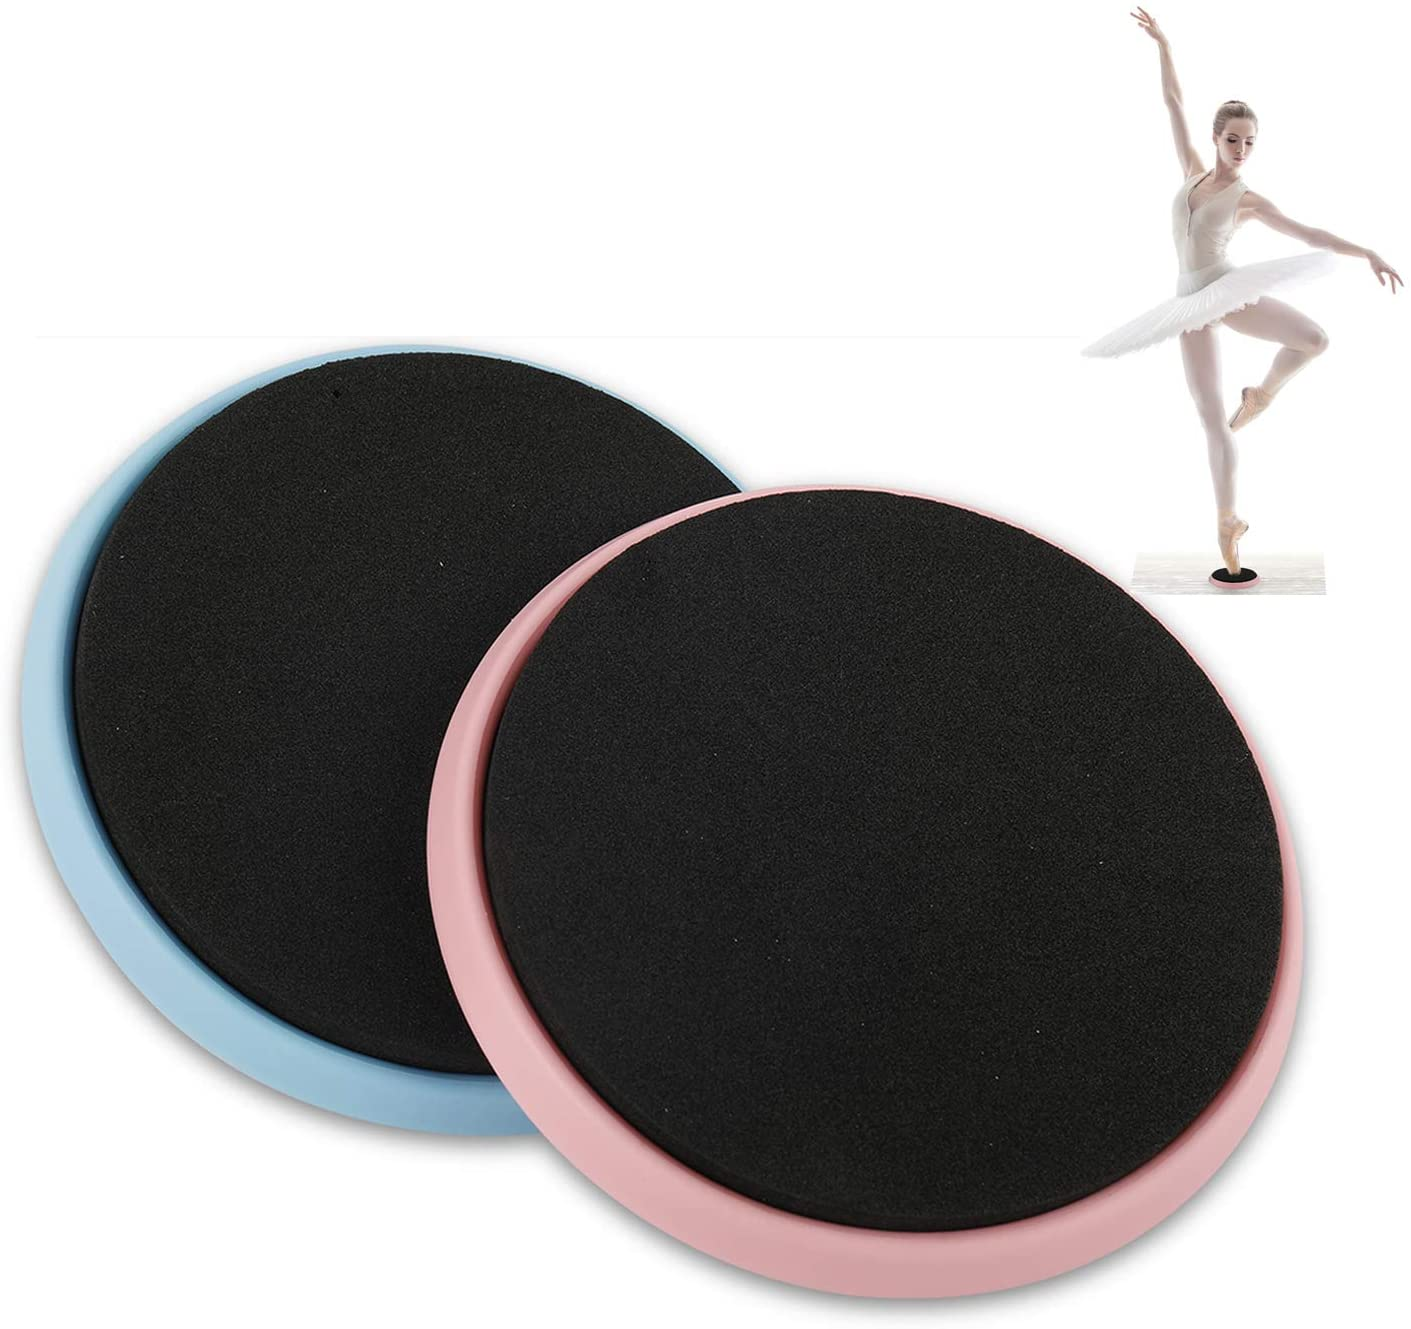 Yaesport Ballet Turning Board for Dancers, ice Skater and Gymnastics - Improve Balance, Pirouettes Spinning and Stability, Portable Ballet Turning Disc, 2 Pack